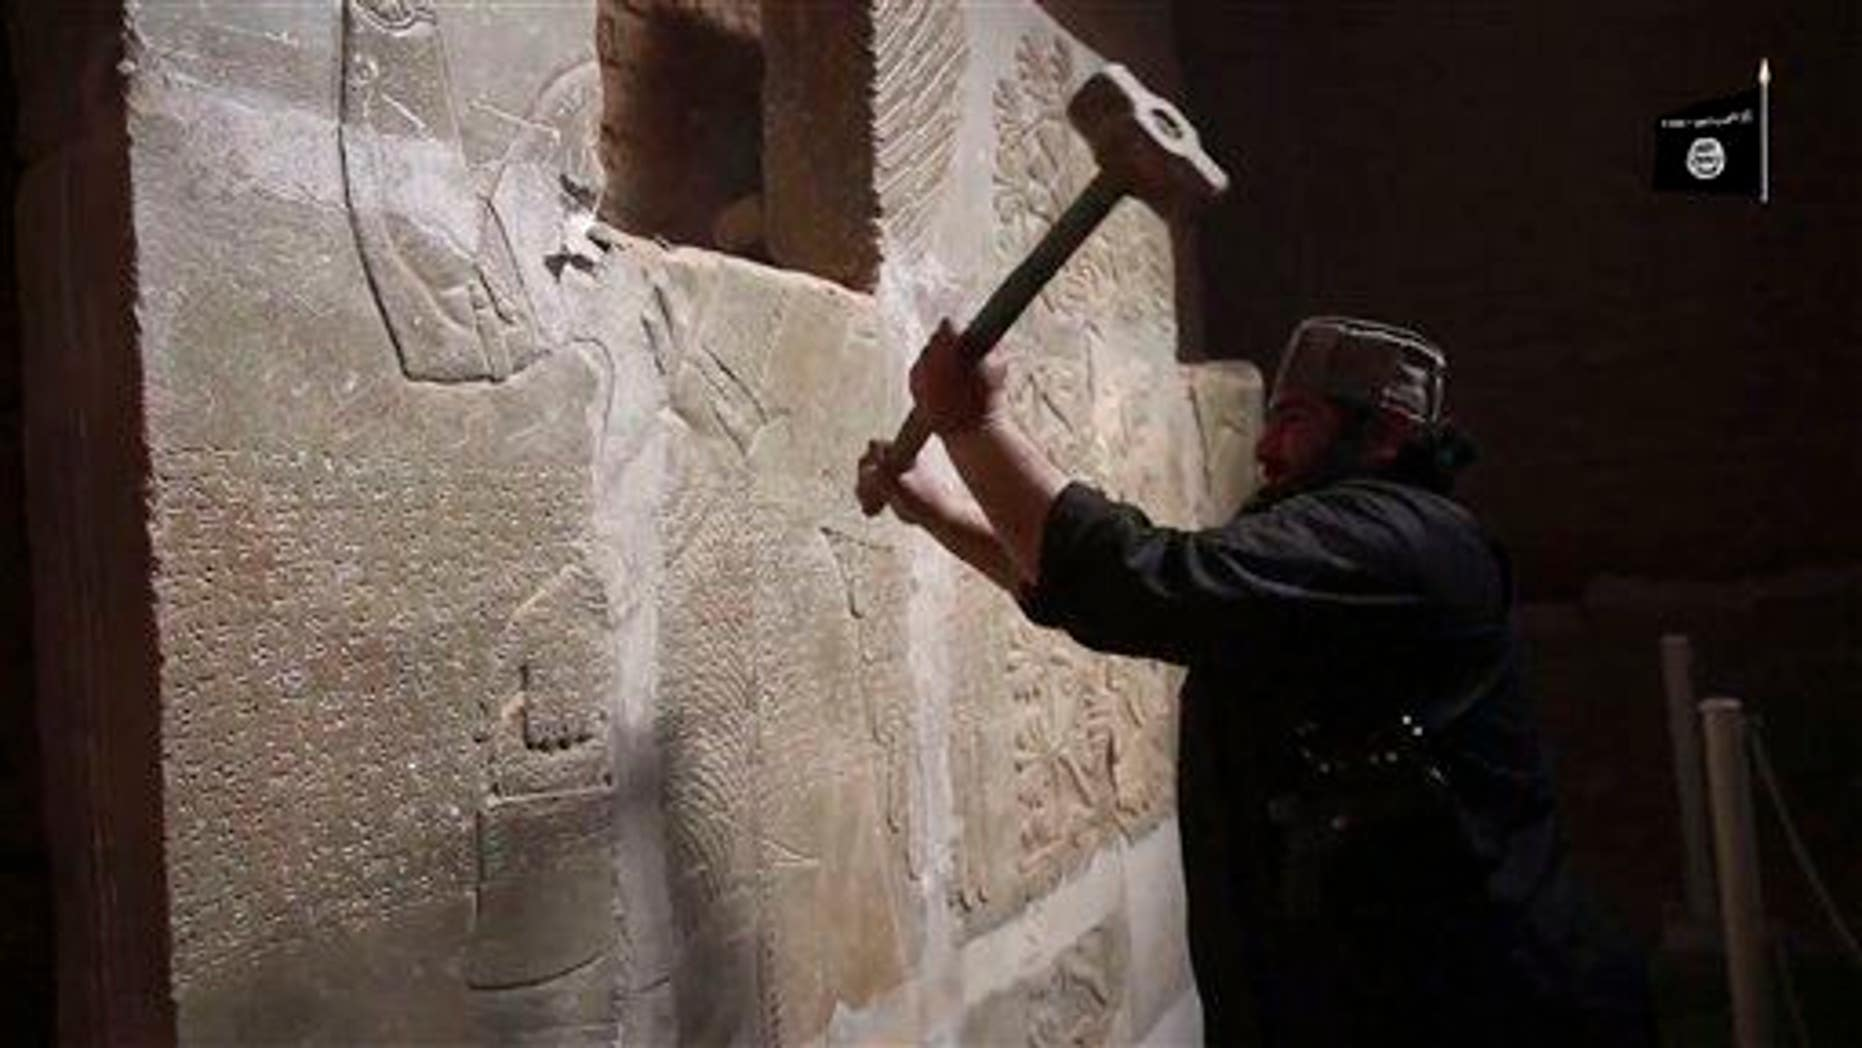 This image made from an apparent ISIS video posted April 11, 2015, purports to show a militant taking a sledgehammer to an Assyrian relief at the site of the ancient Assyrian city of Nimrud in Iraq.